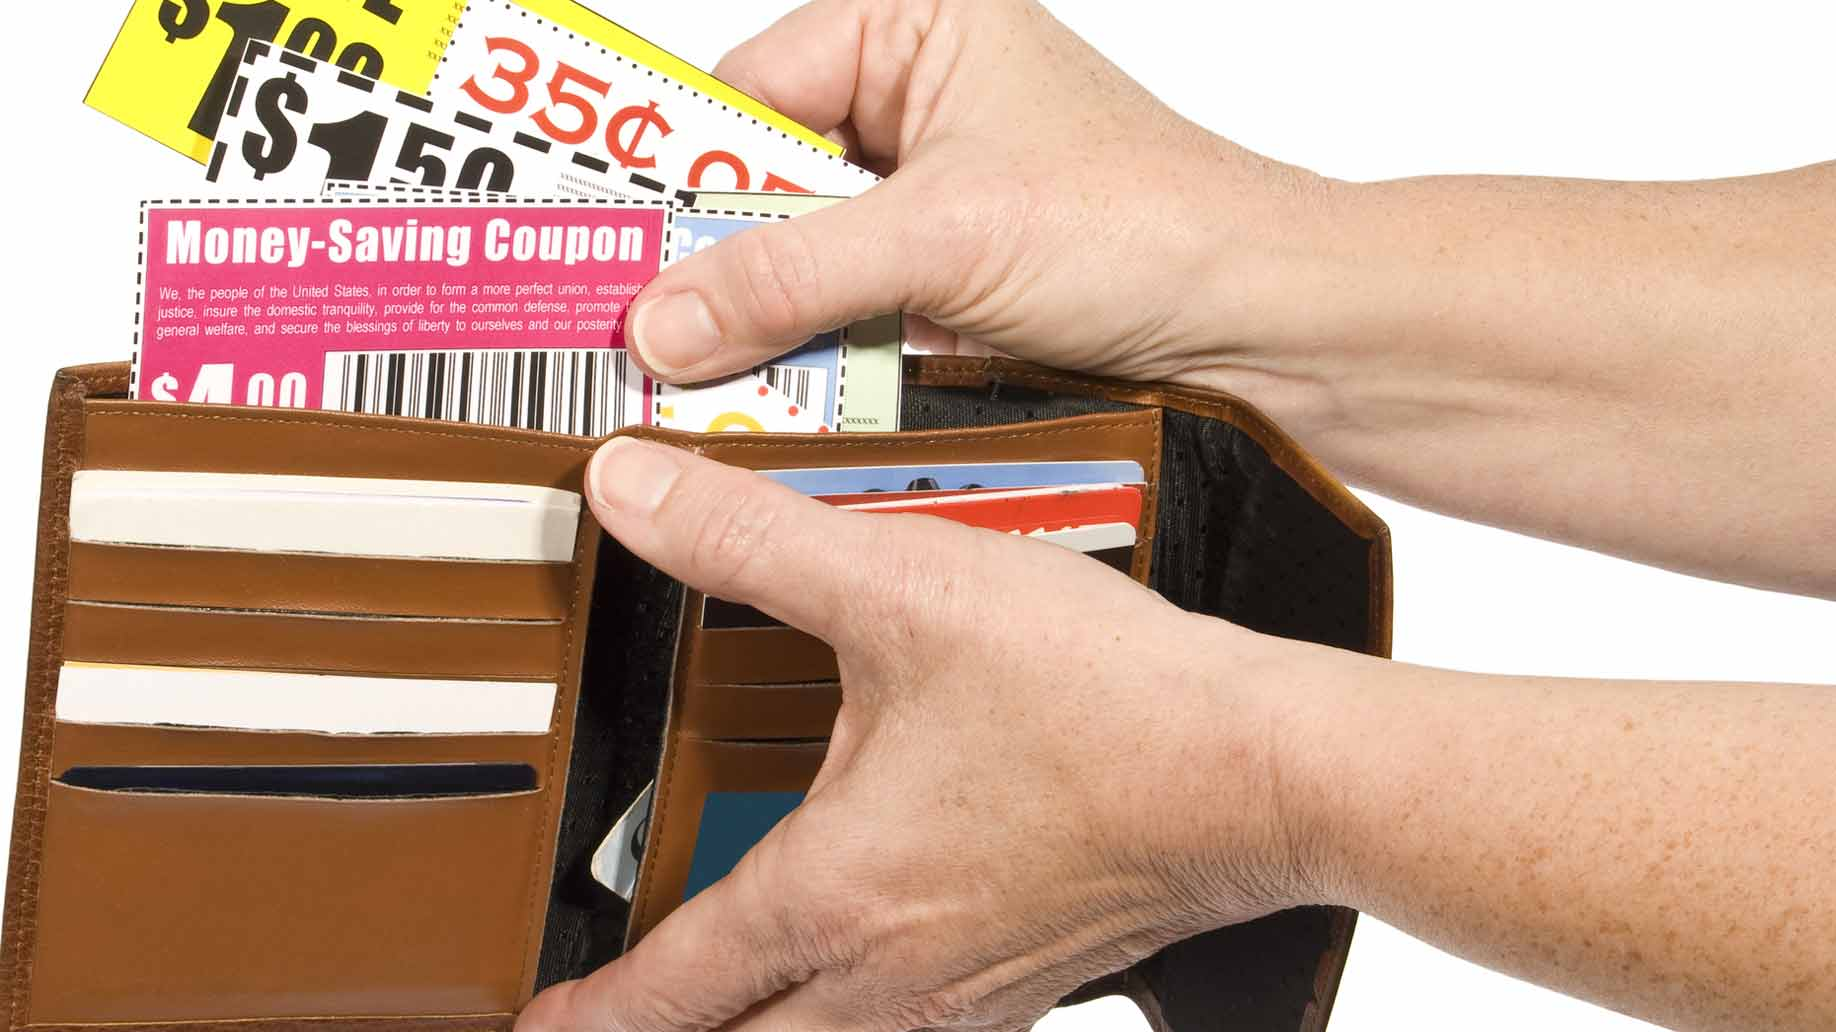 taking coupon out of wallet